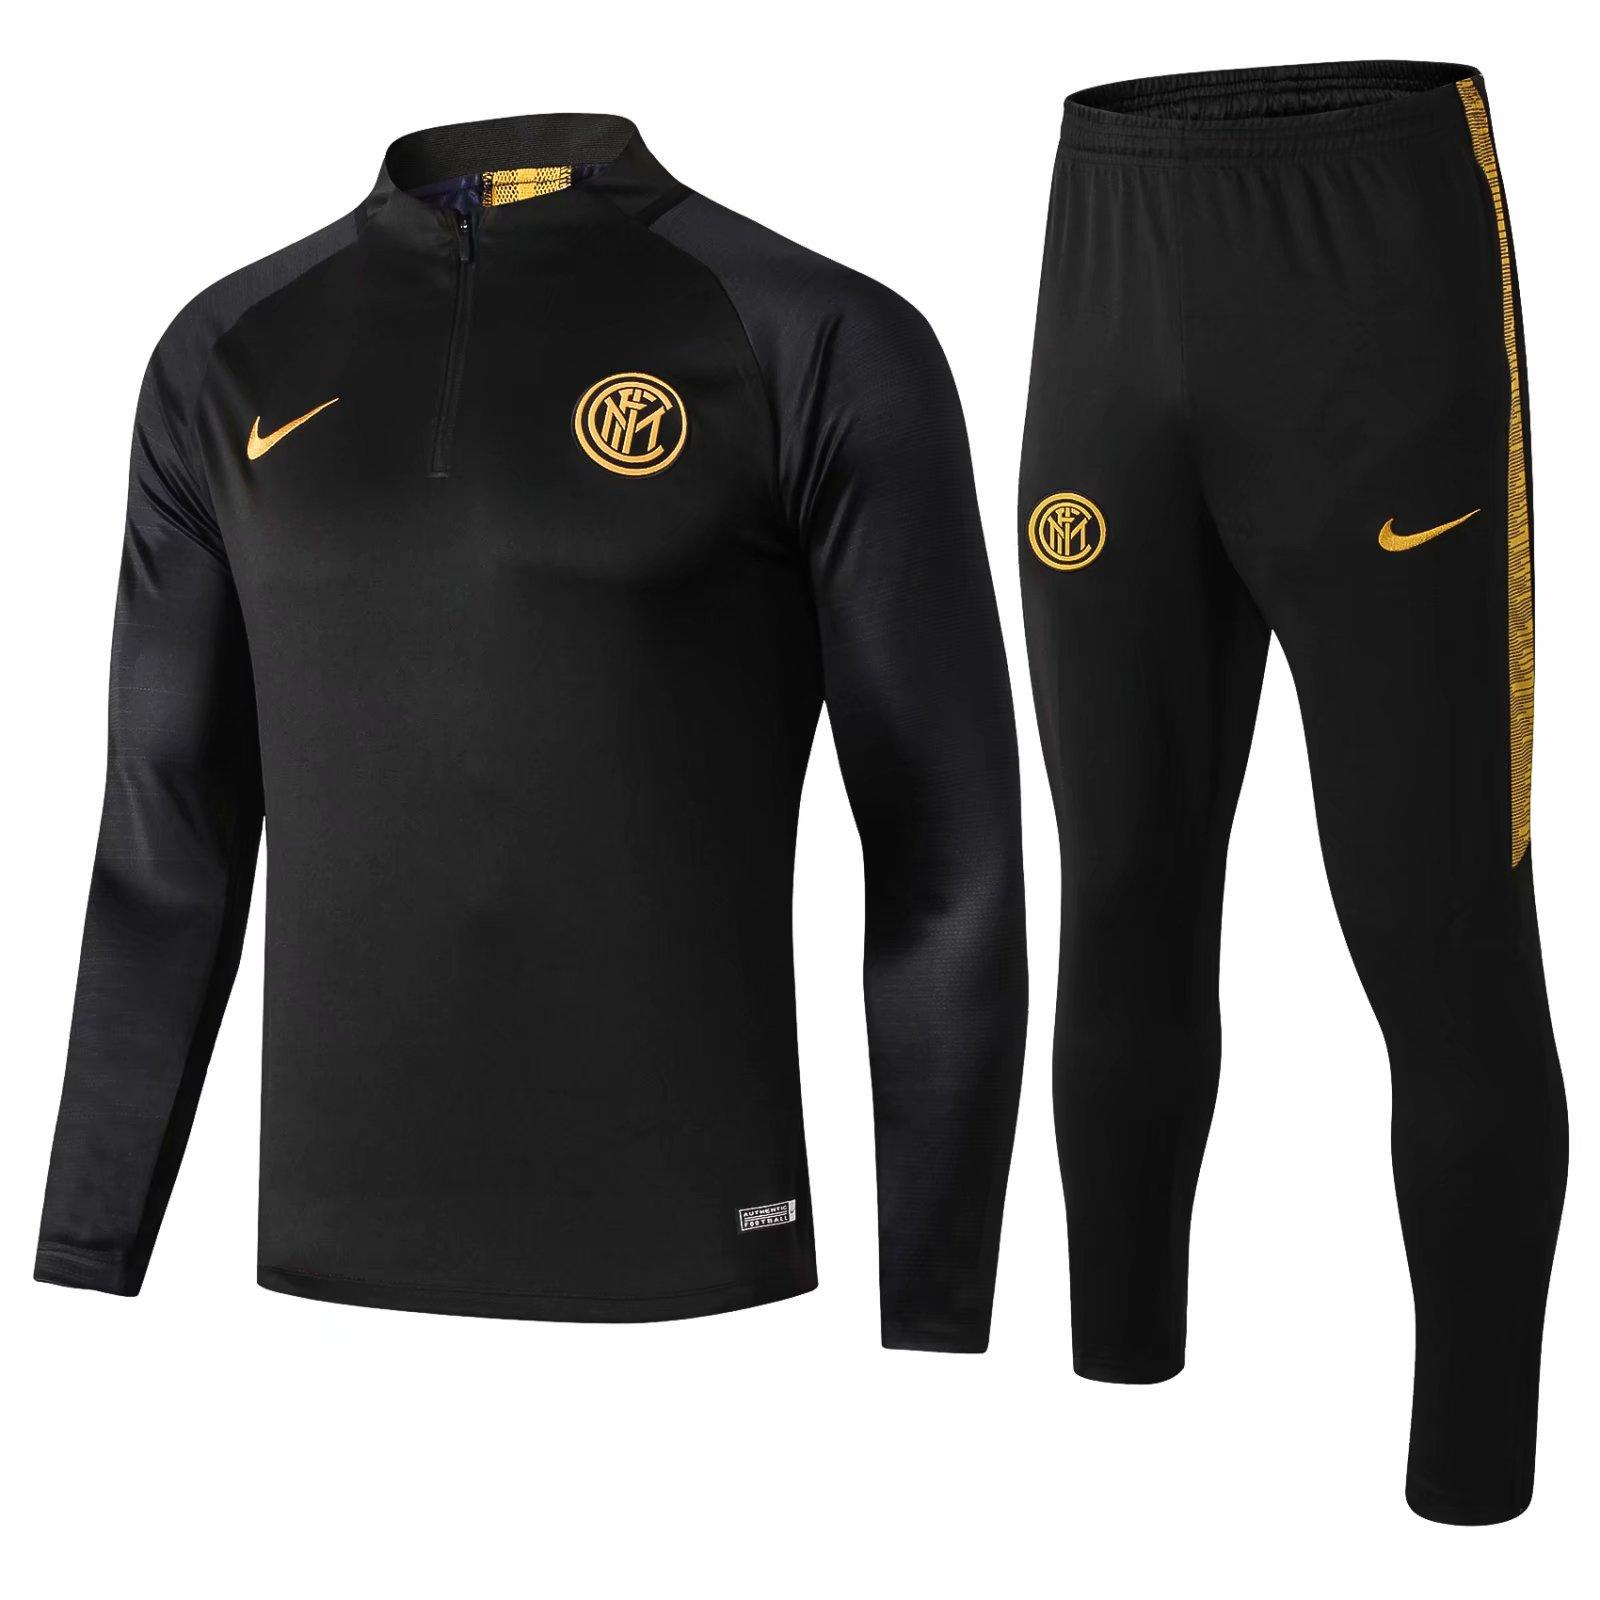 good quality new 19 20 inter milan tracksuits Mauro jacket 2019 2020 soccer jersey Perisic training suit Nainggolan Hoodie coats